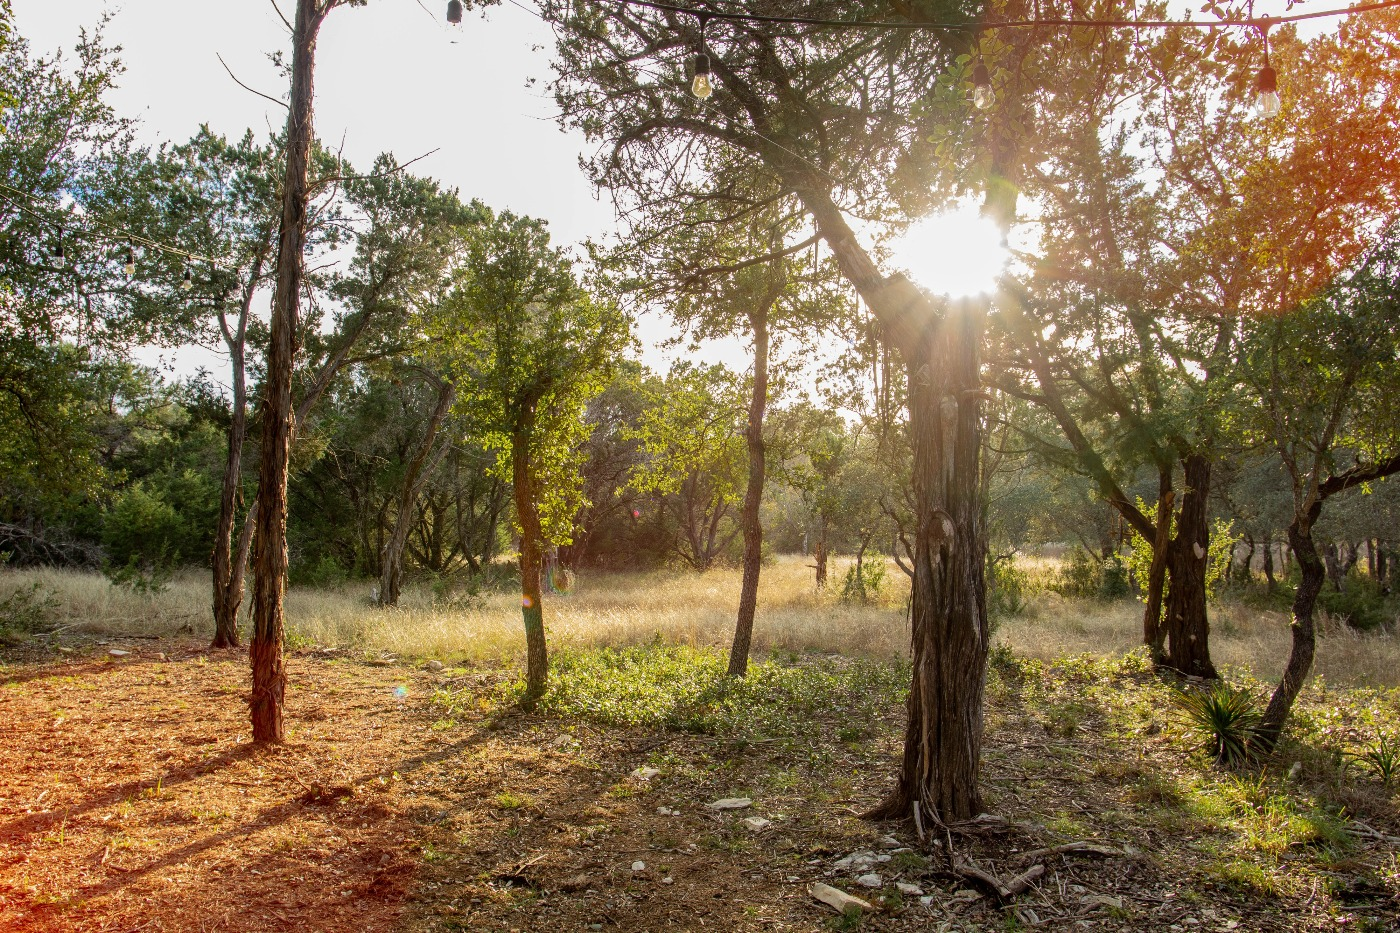 event center day2 C.jpg